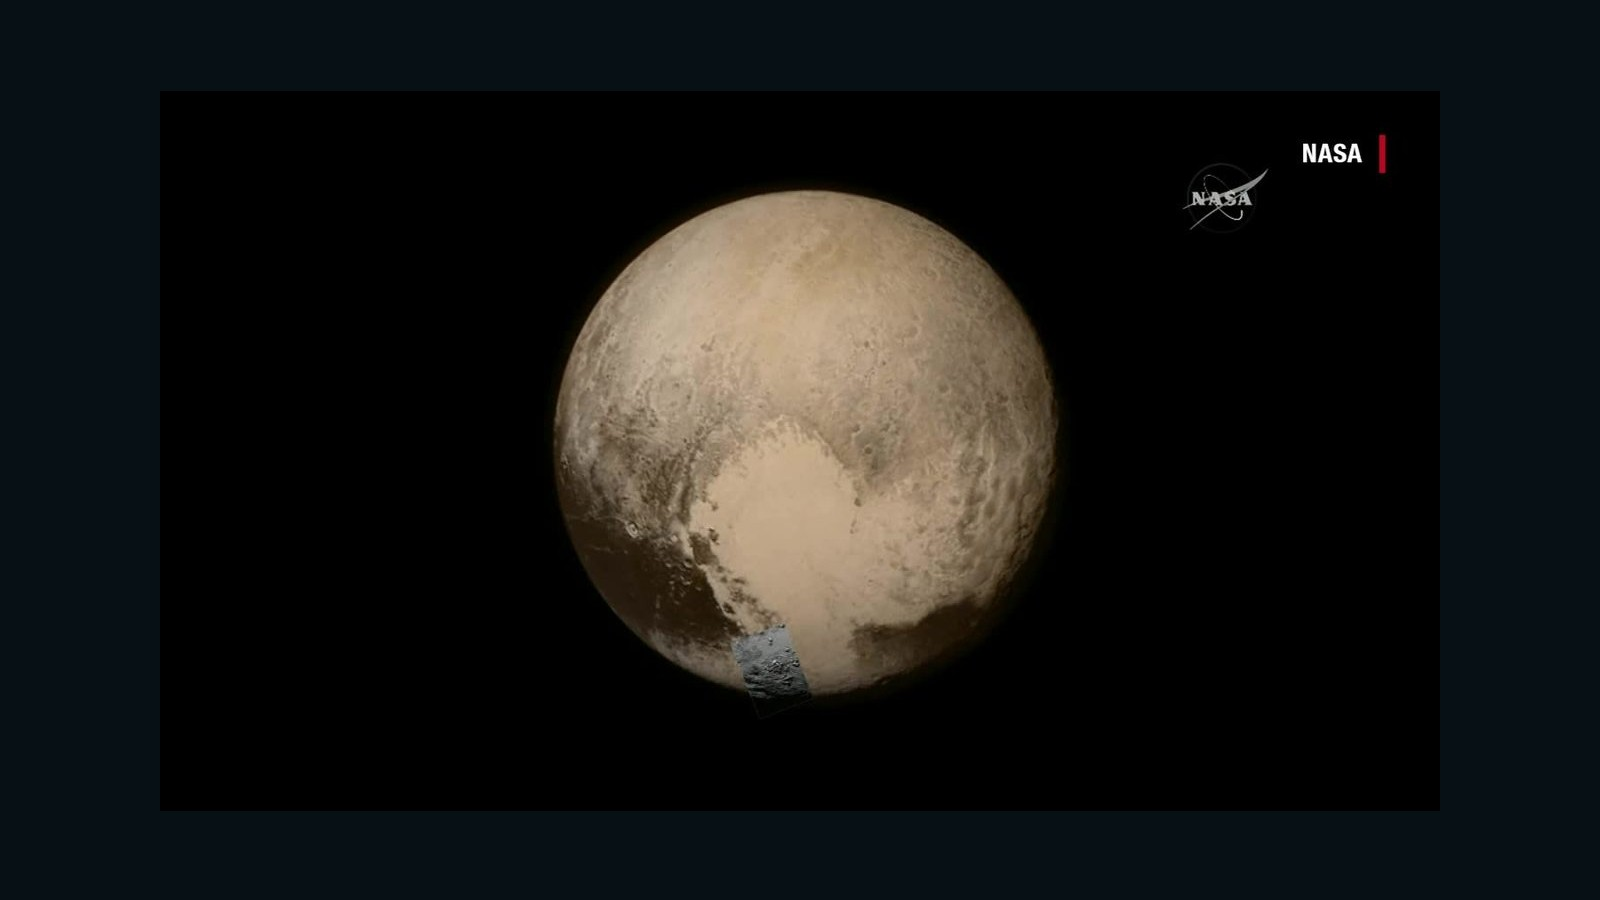 flyby spacecraft and pluto - photo #11